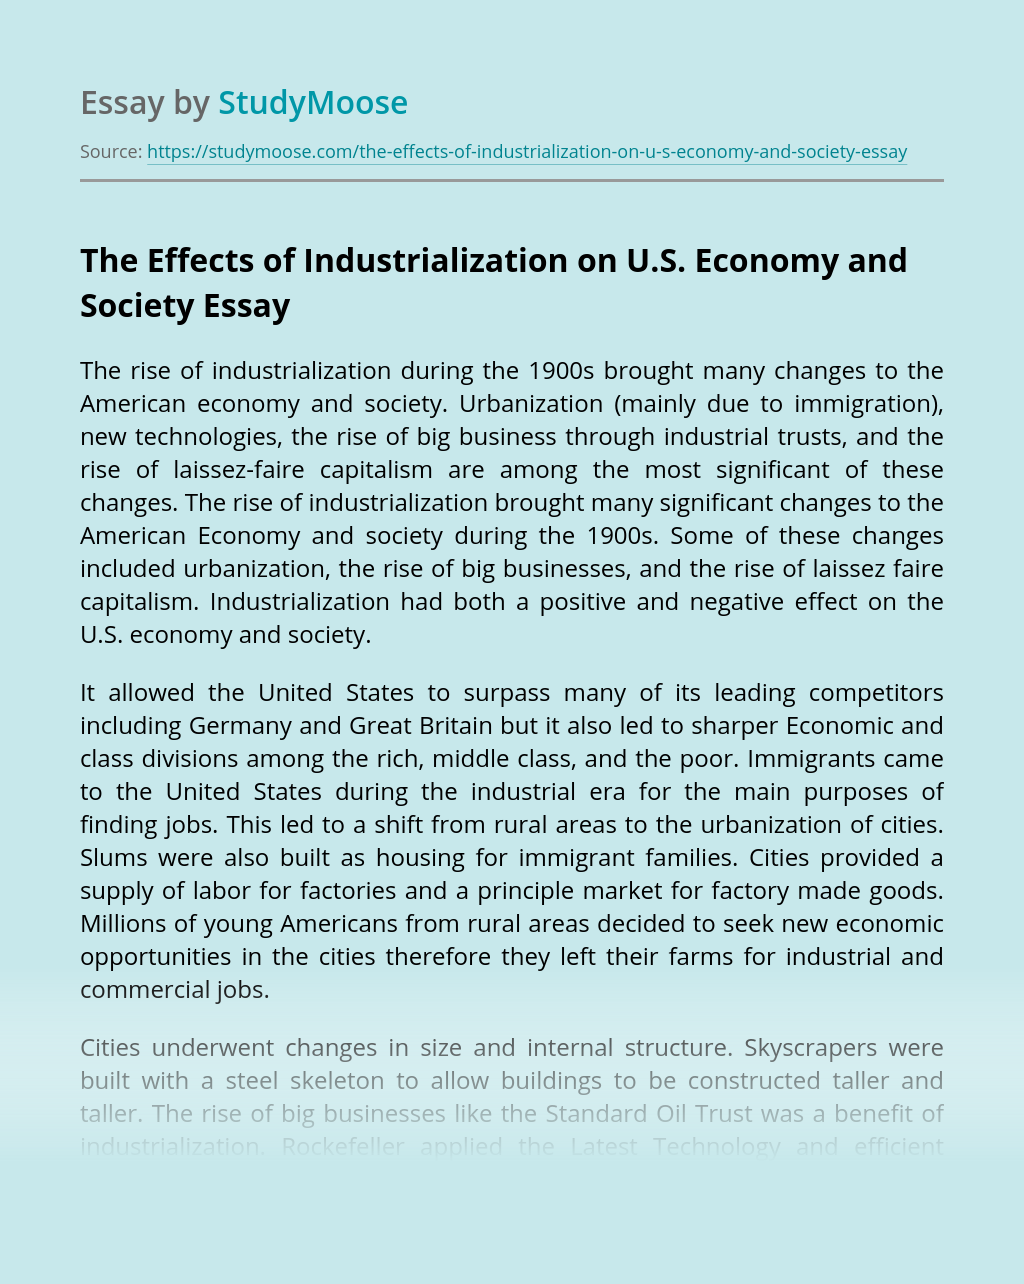 The Effects of Industrialization on U.S. Economy and Society